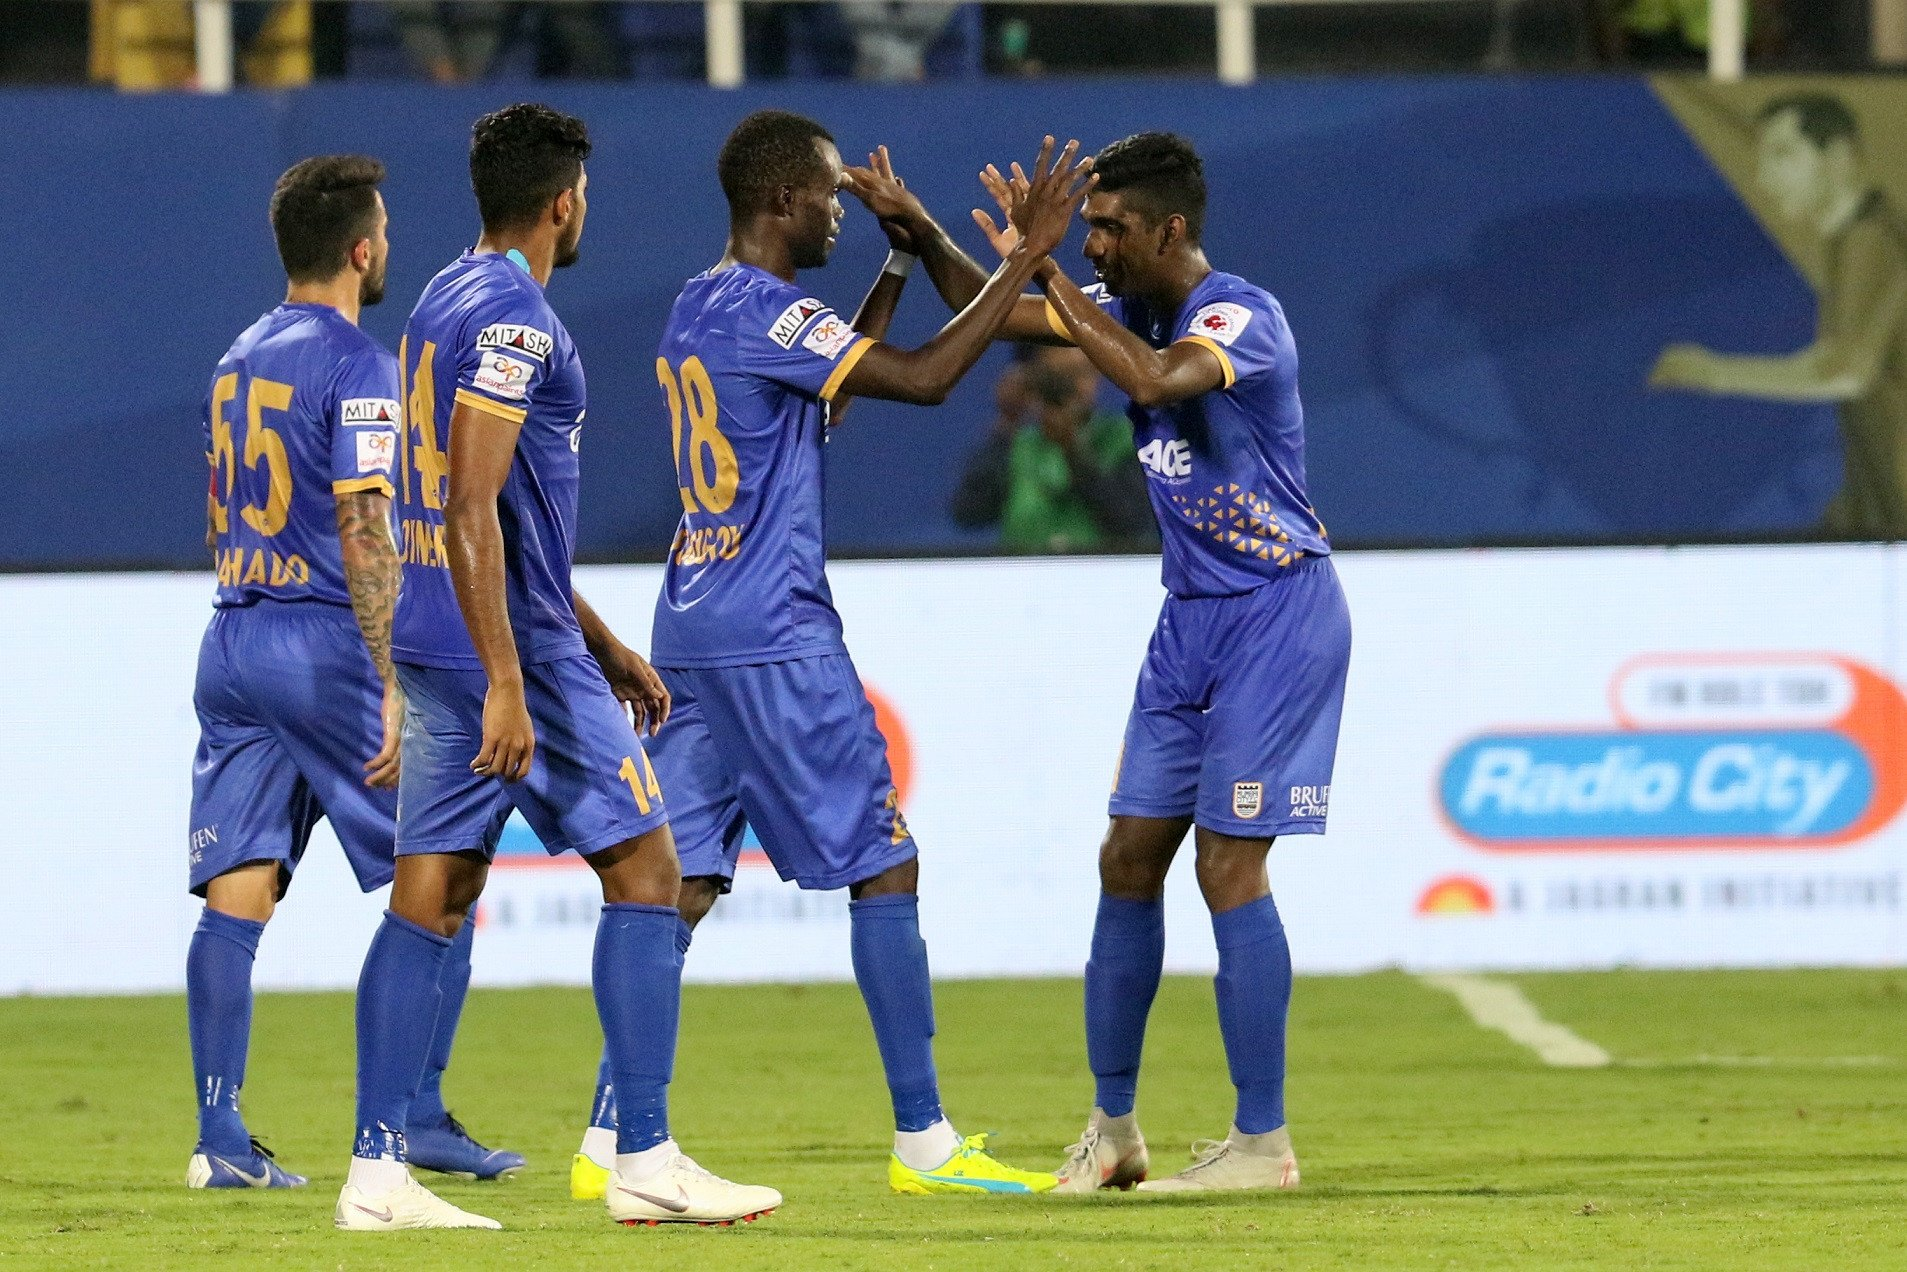 Hero ISL 2018/19: Mumbai City FC continue their impressive run with a 2-0 win over Chennaiyin FC